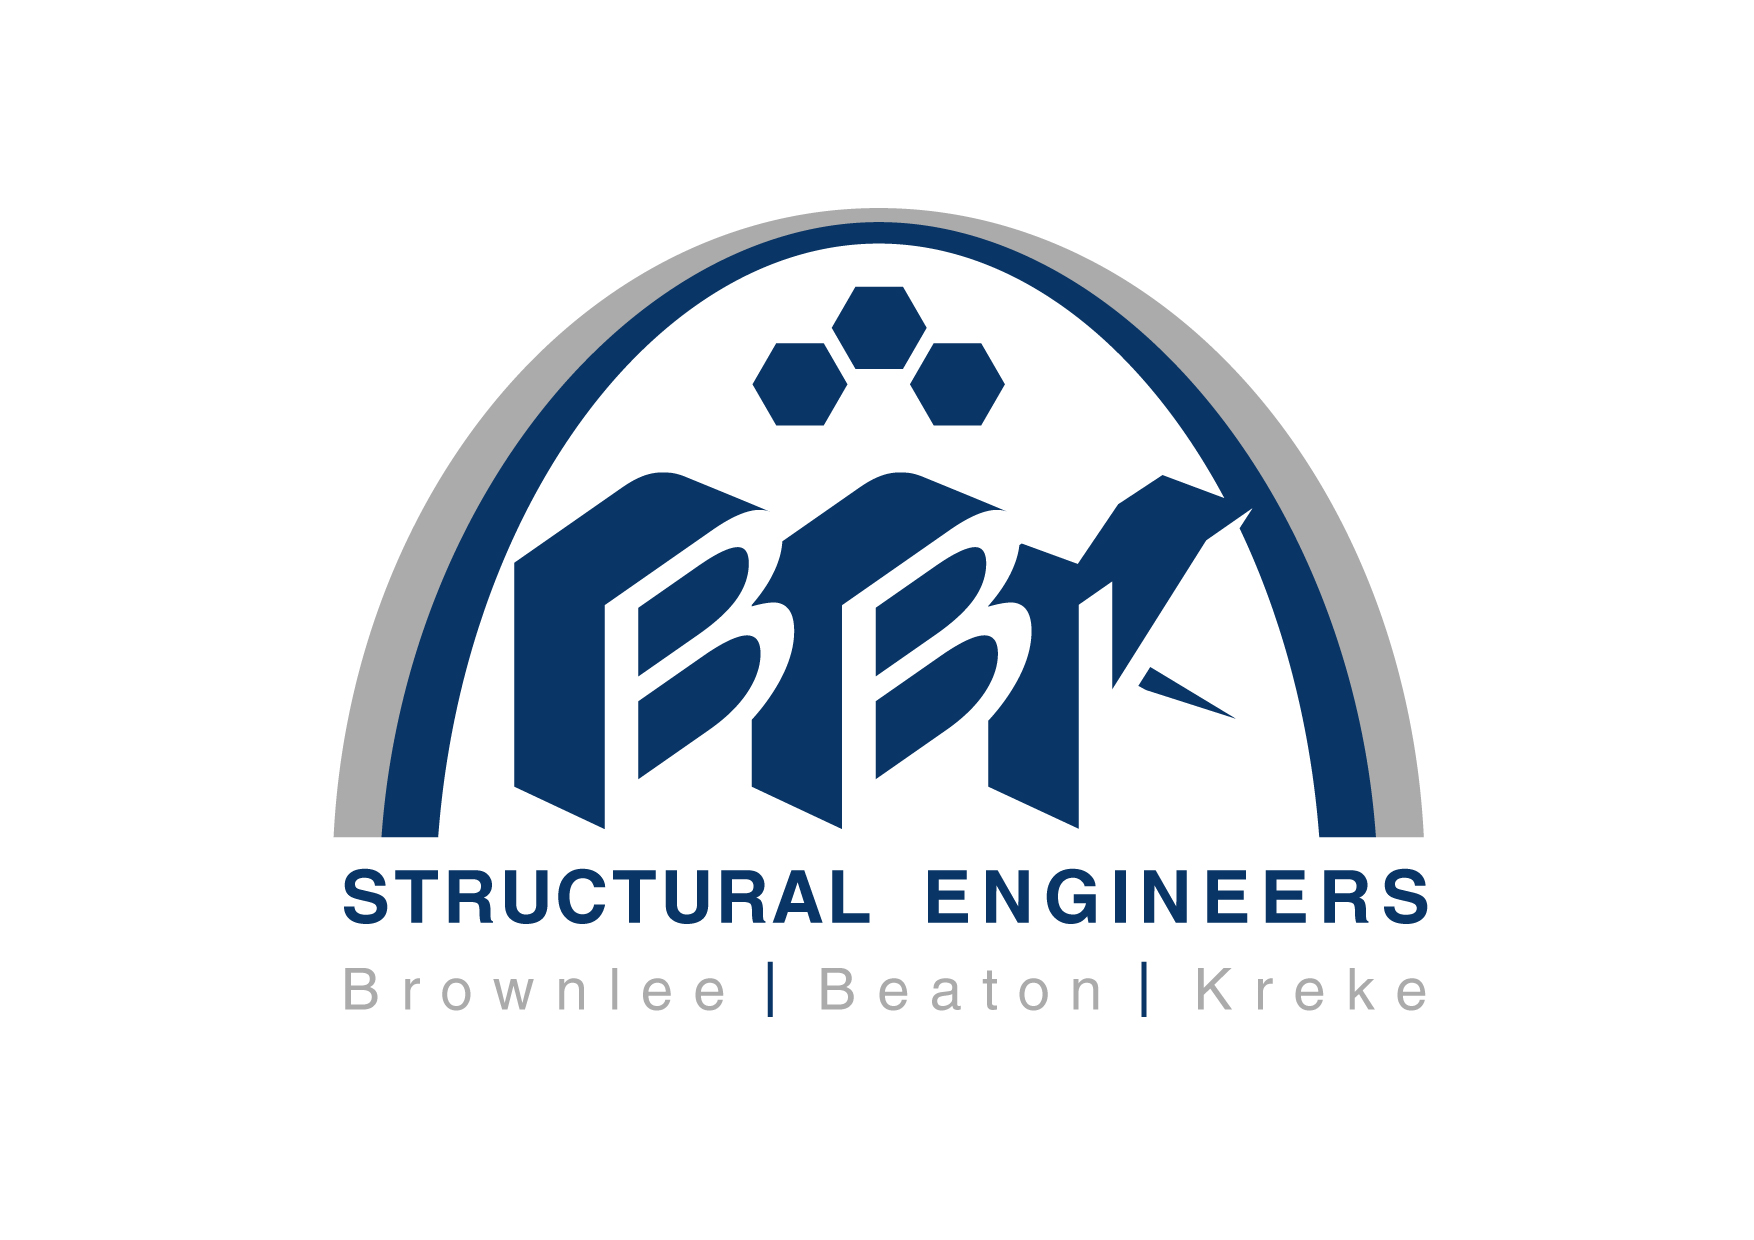 Logo Design by Wilfredo Mendoza - Entry No. 171 in the Logo Design Contest Logo Design Needed for Exciting New Company BBK Consulting Engineers.